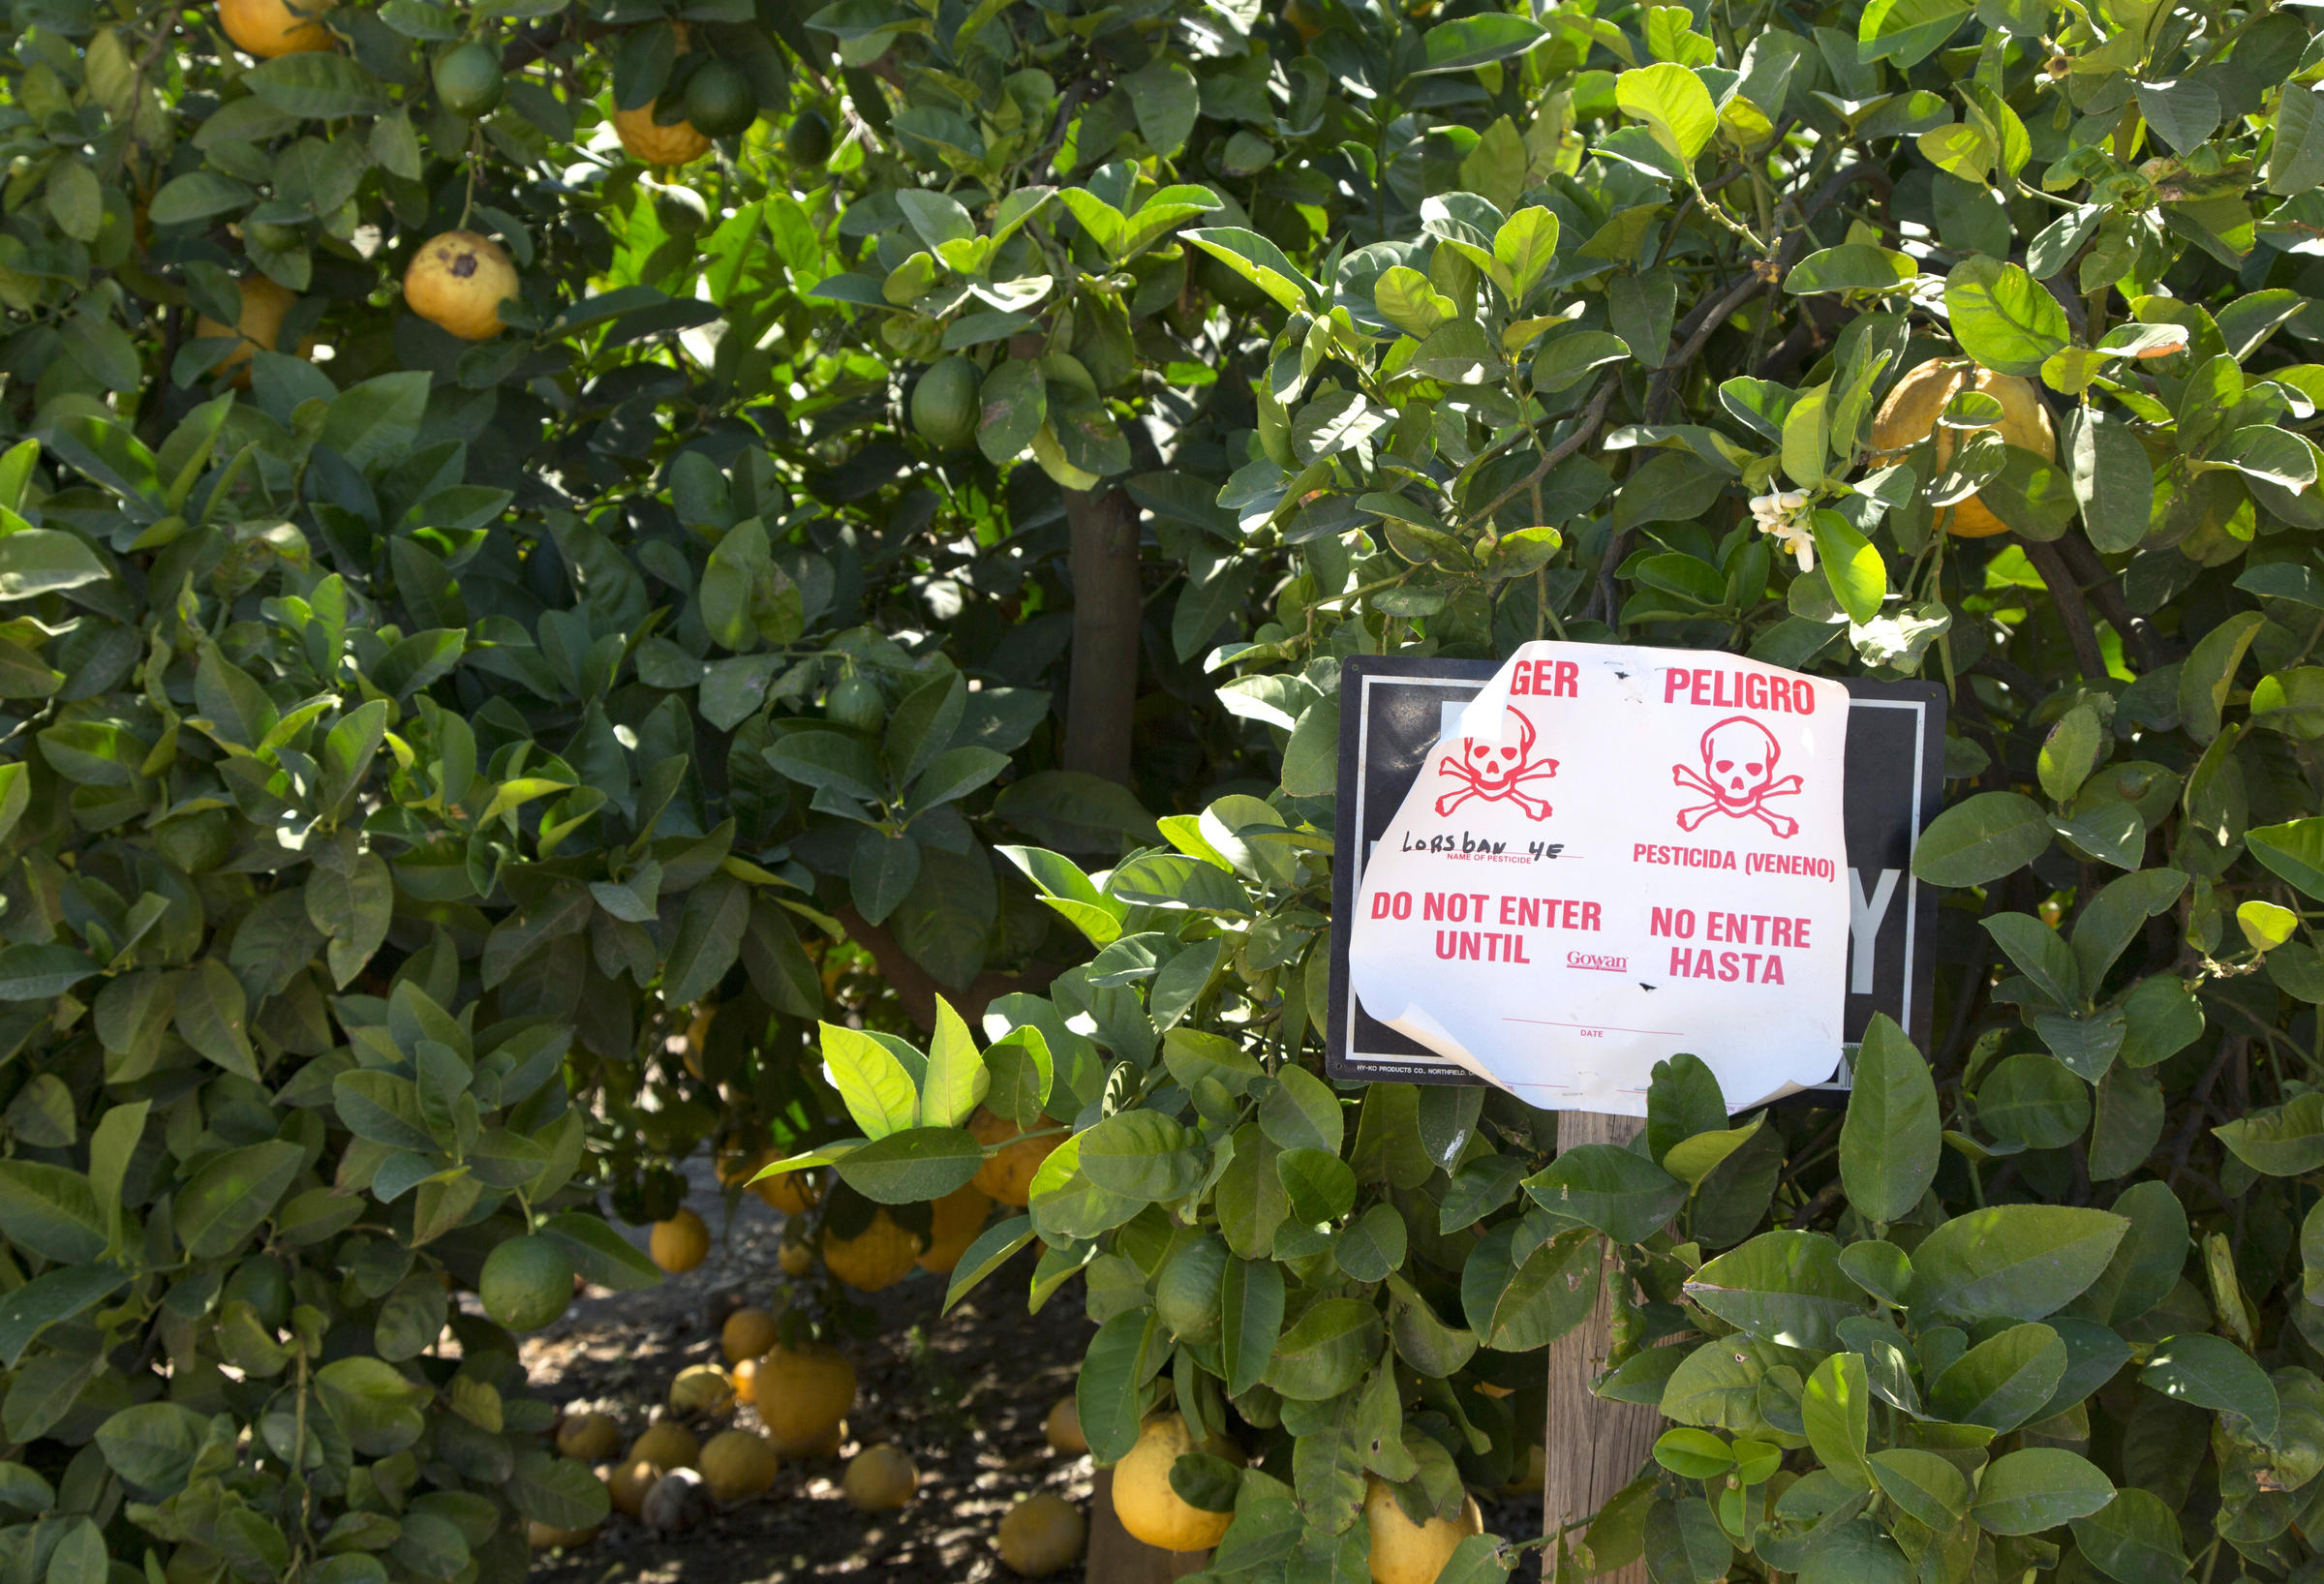 Will An Appeals Court Make The EPA Ban A Pesticide Linked To Serious Health Risks?